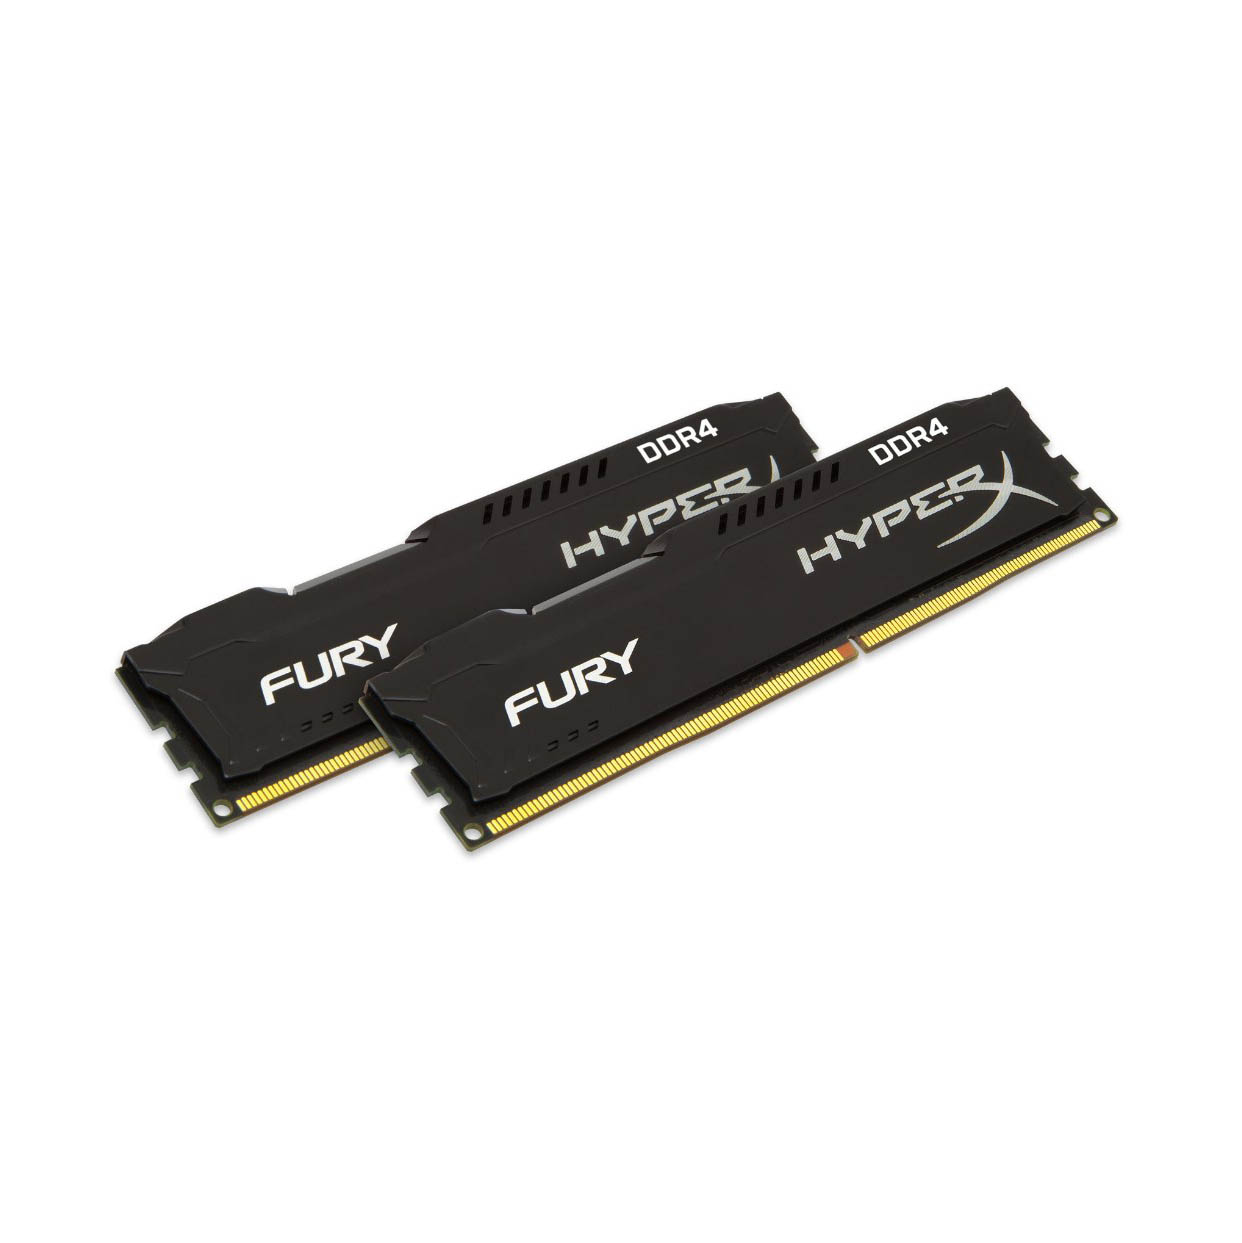 Ram Kingston HyperX Fury Black 16GB DDR4 Bus 2400Mhz